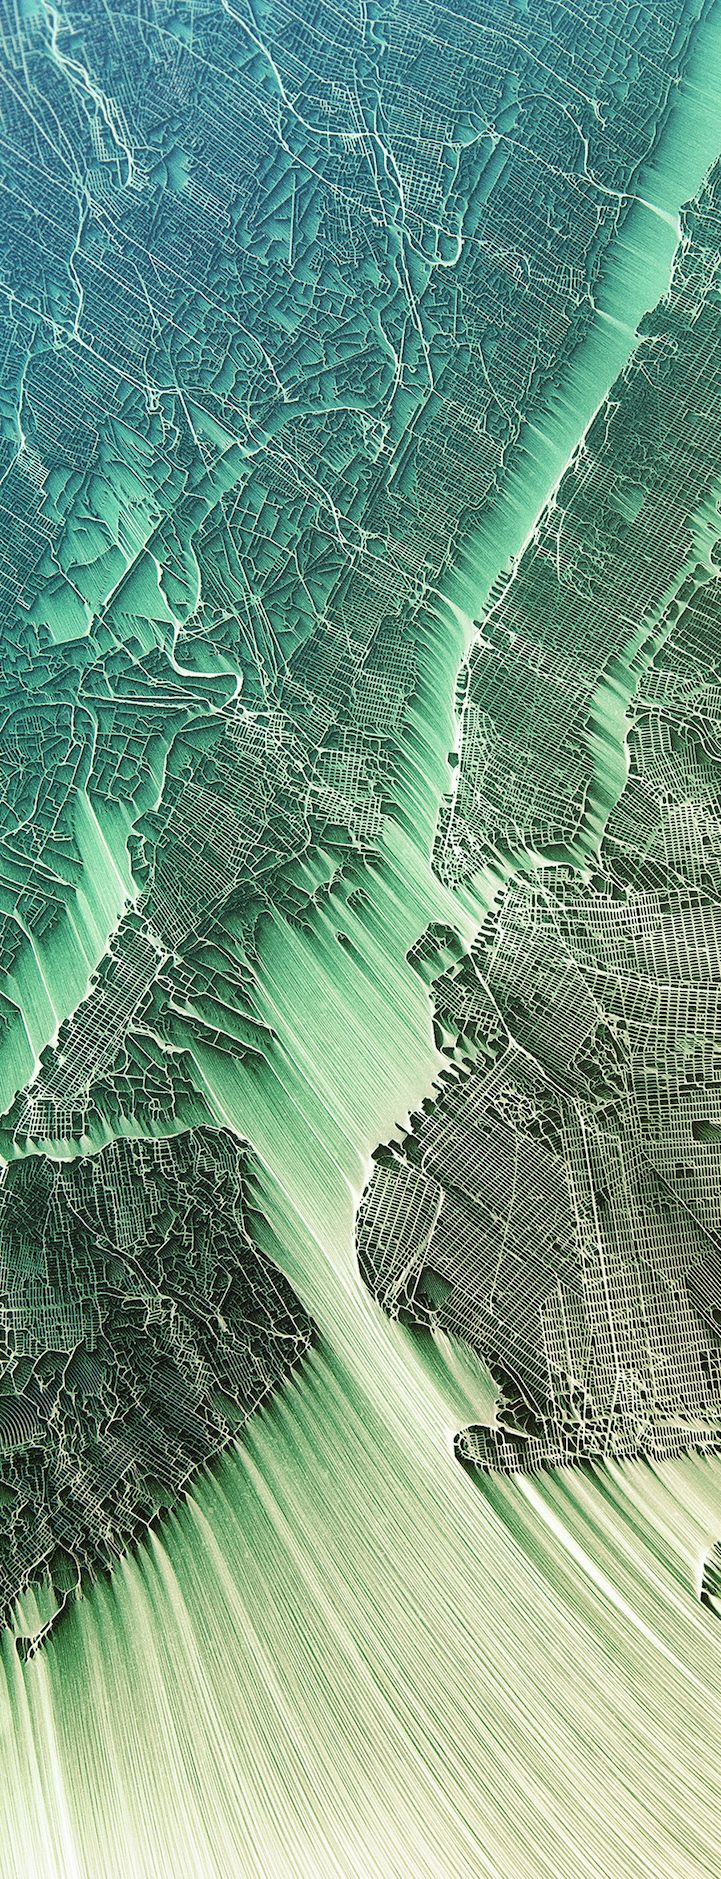 Mapa London%0A World u    s Cities Transformed into Vibrant  Flowing Maps of Eroded Terrain